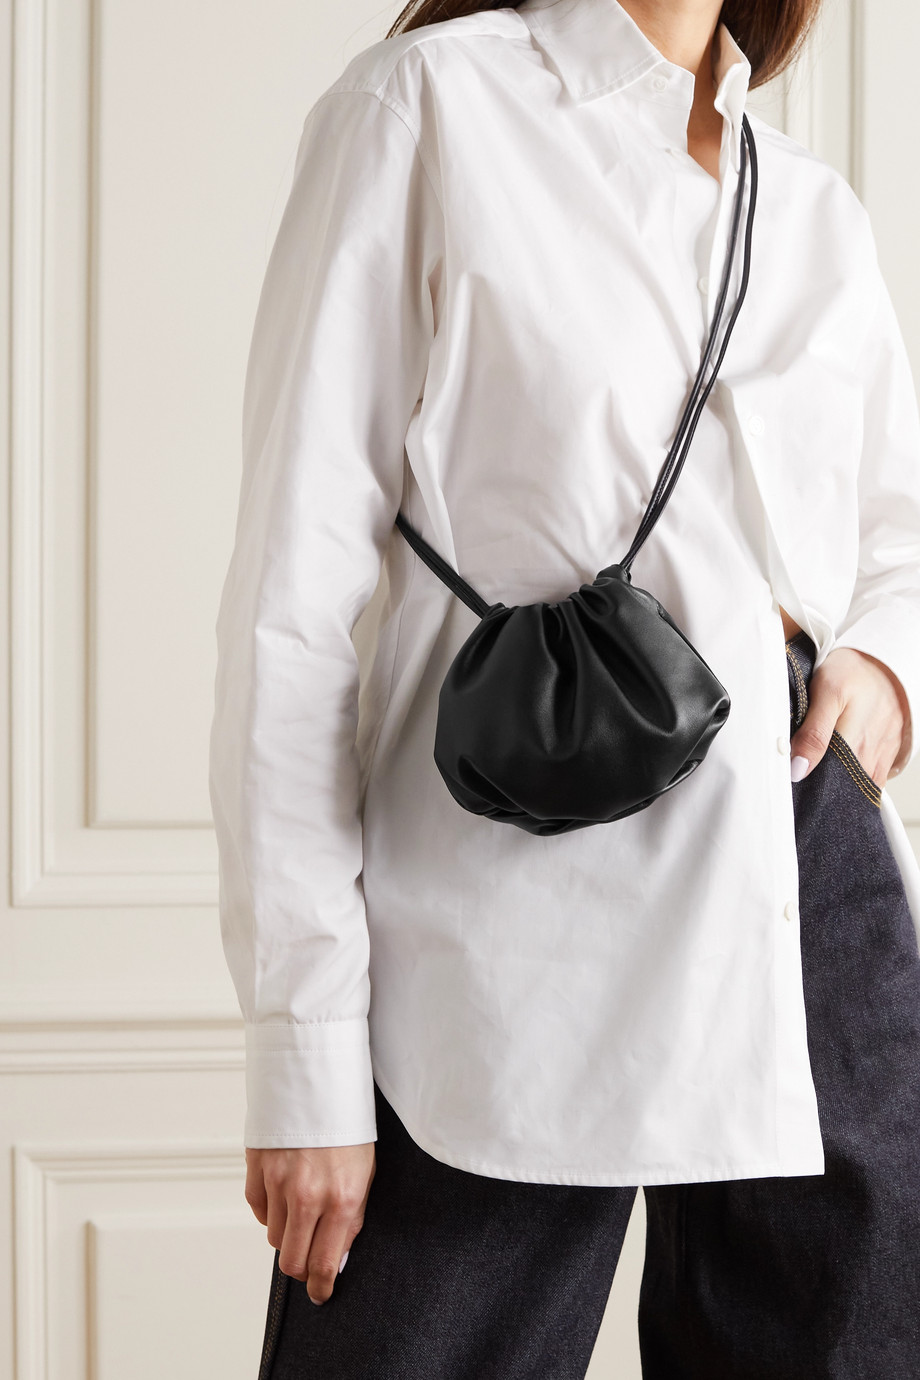 Bottega Veneta The Mini Bulb gathered leather shoulder bag